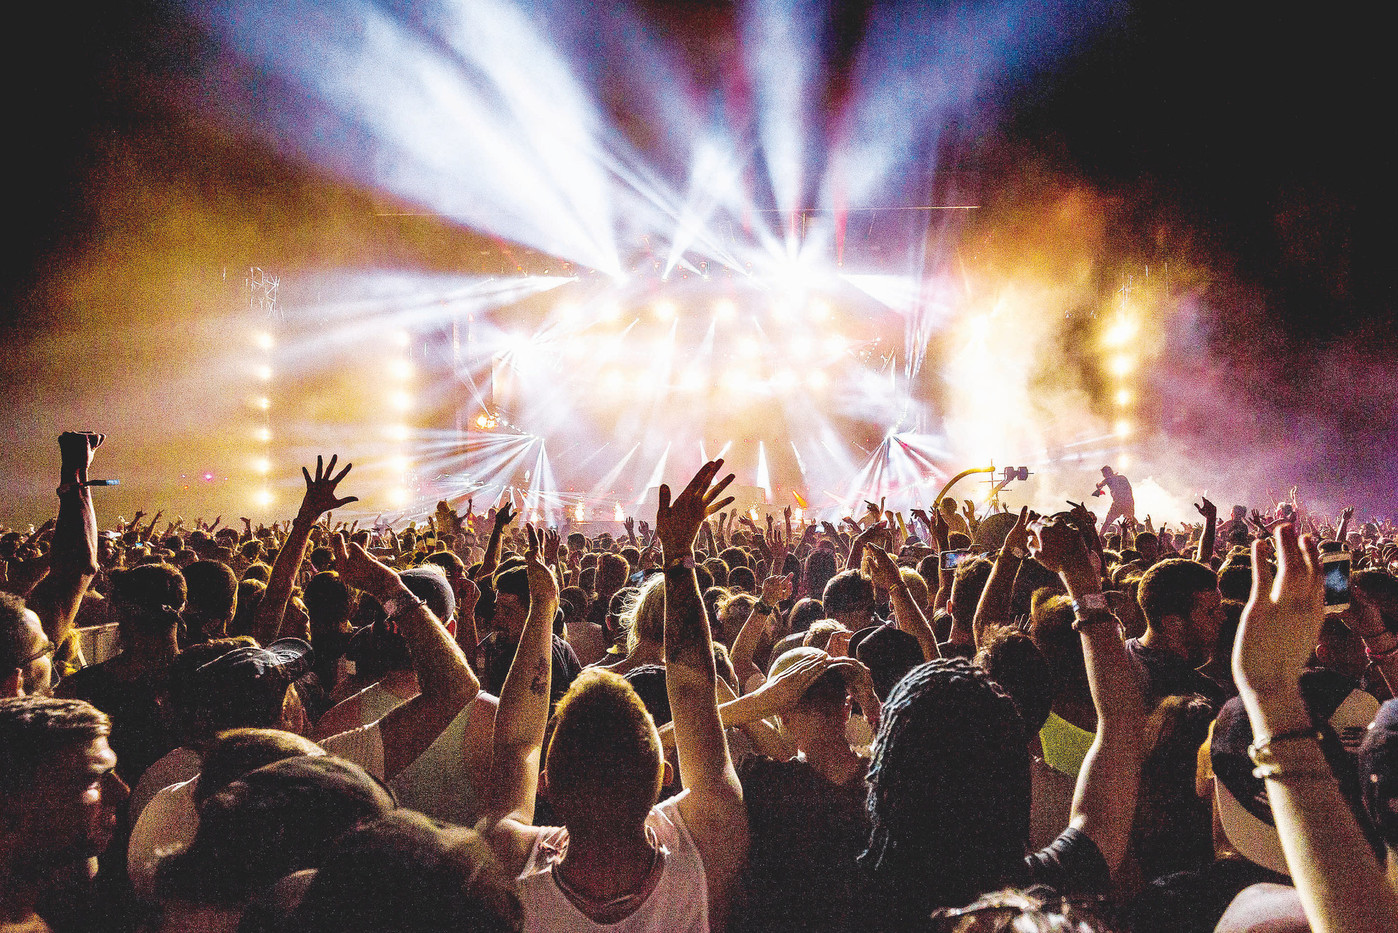 sponsors are key to surviving the shifting music festival landscape